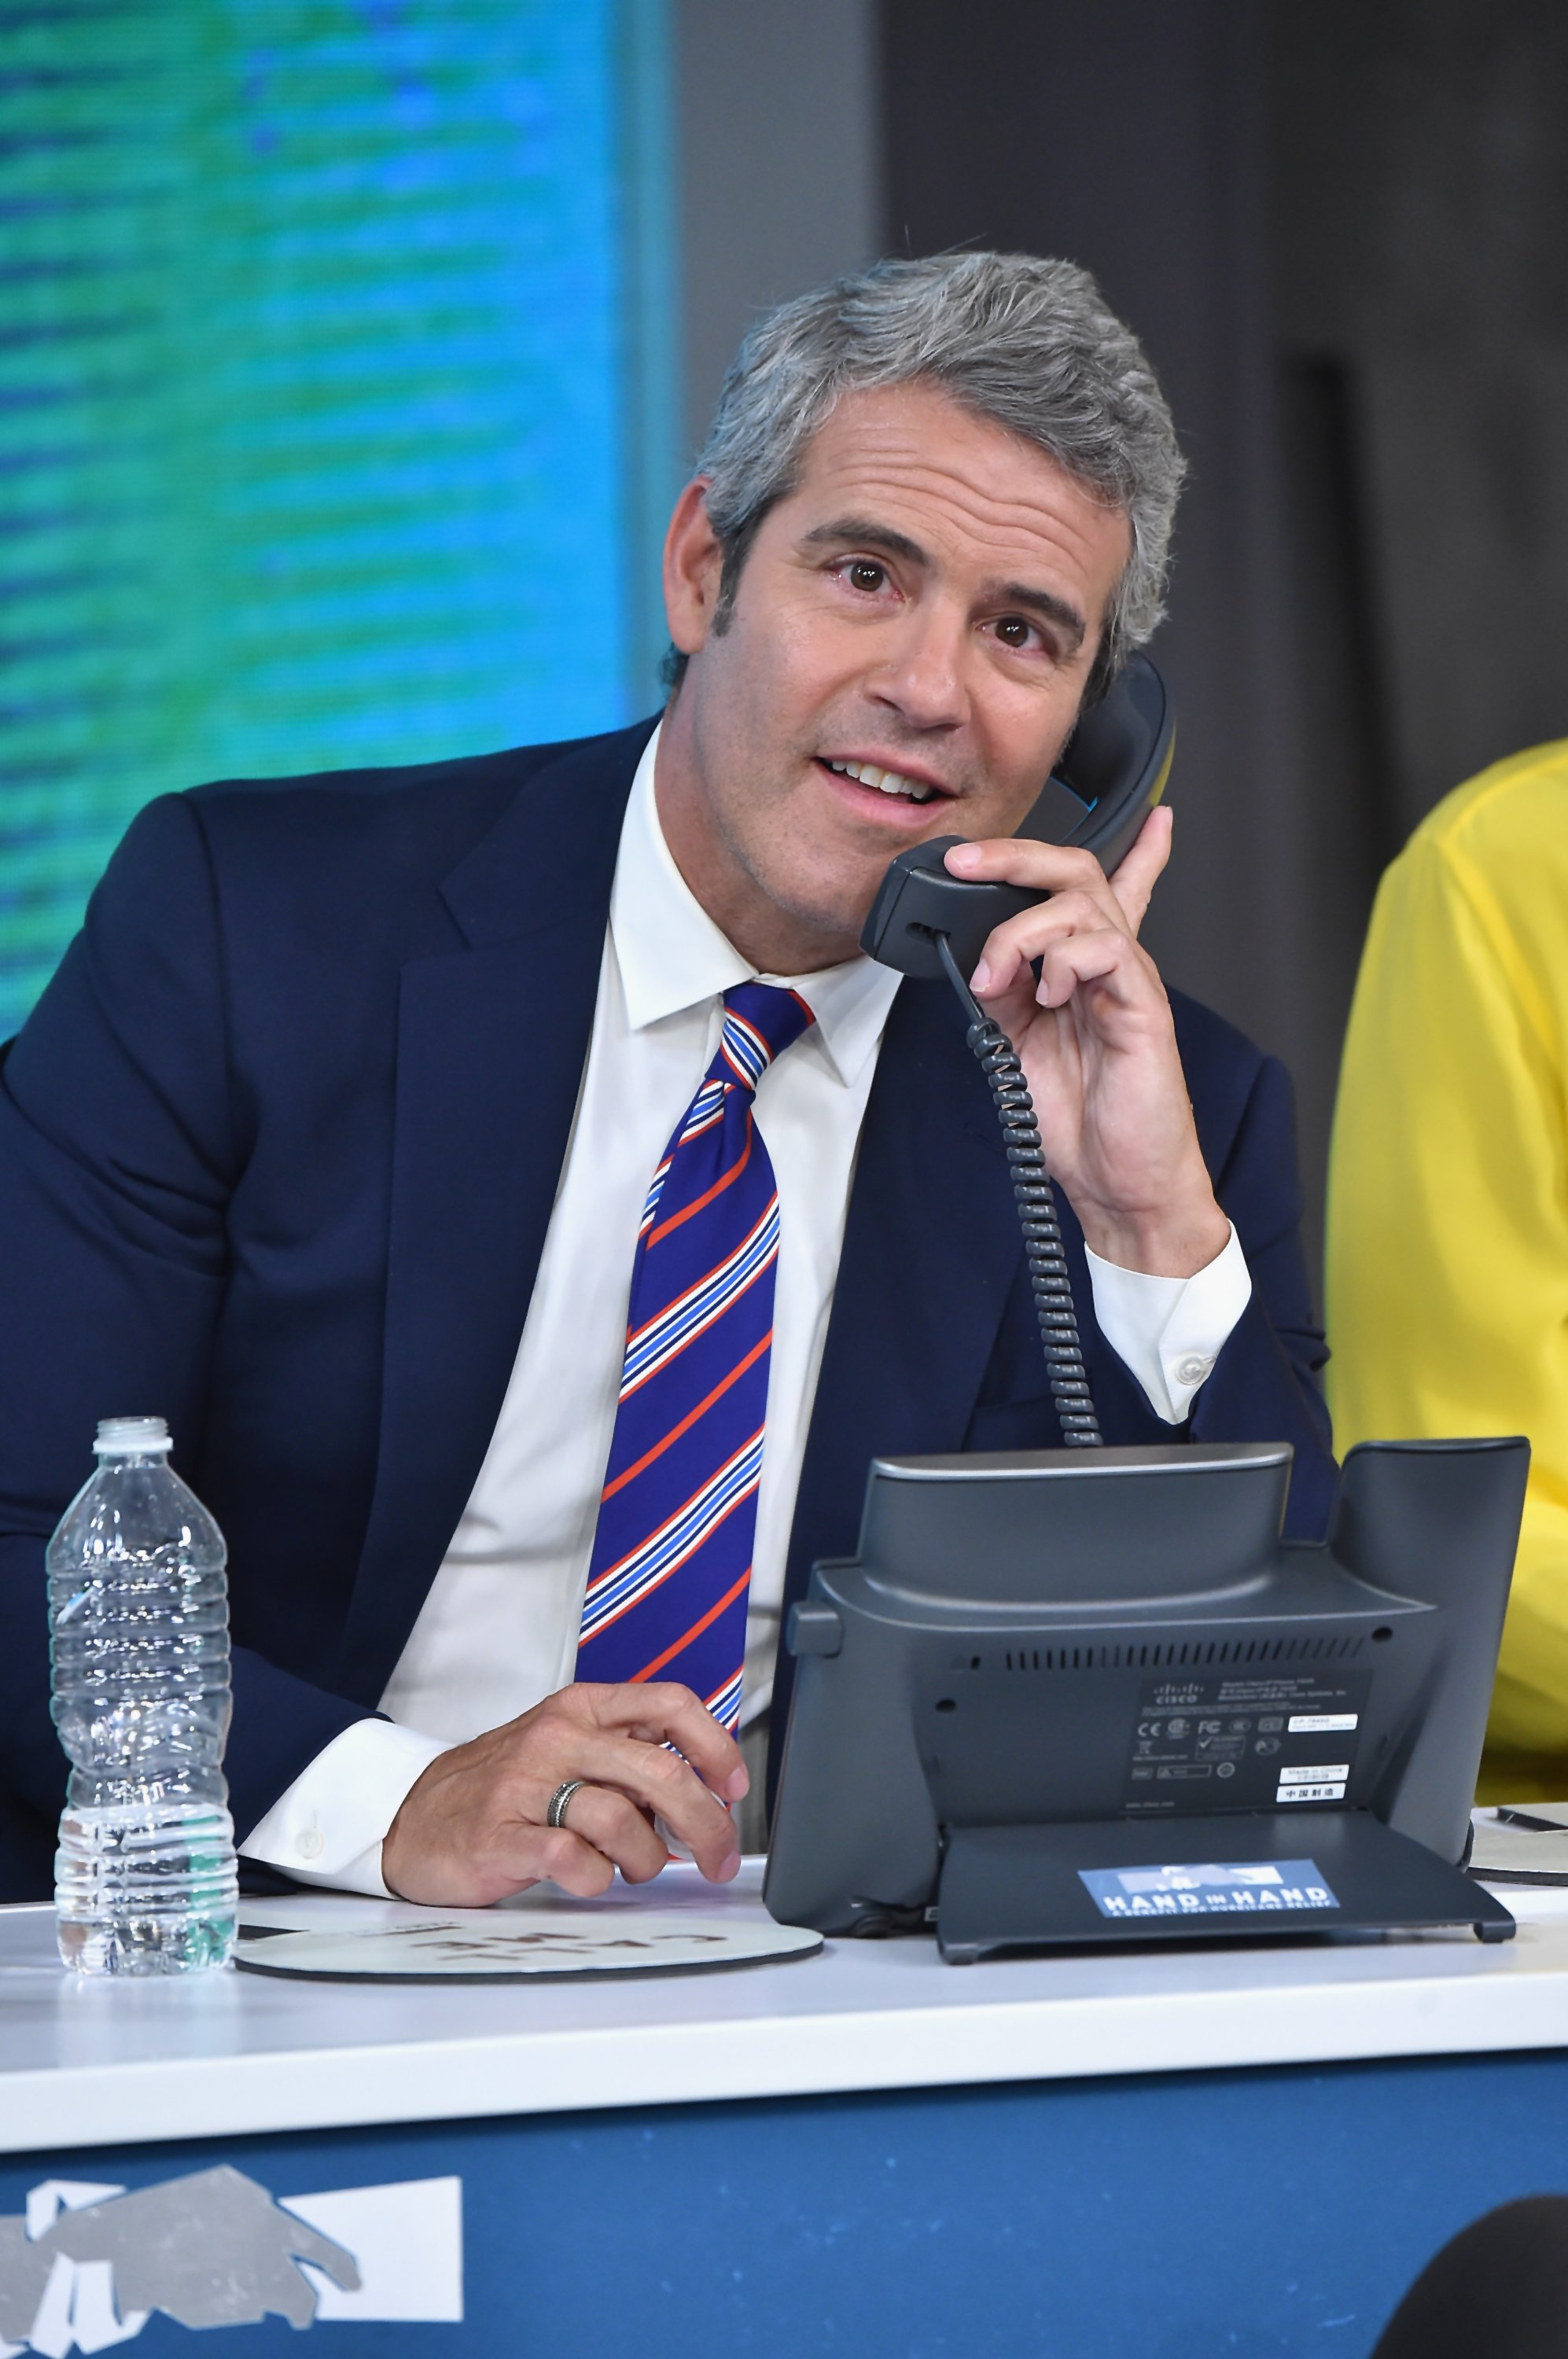 Andy Cohen attends Hand in Hand: A Benefit for Hurricane Relief on September 12, 2017 | Photo: Getty Images